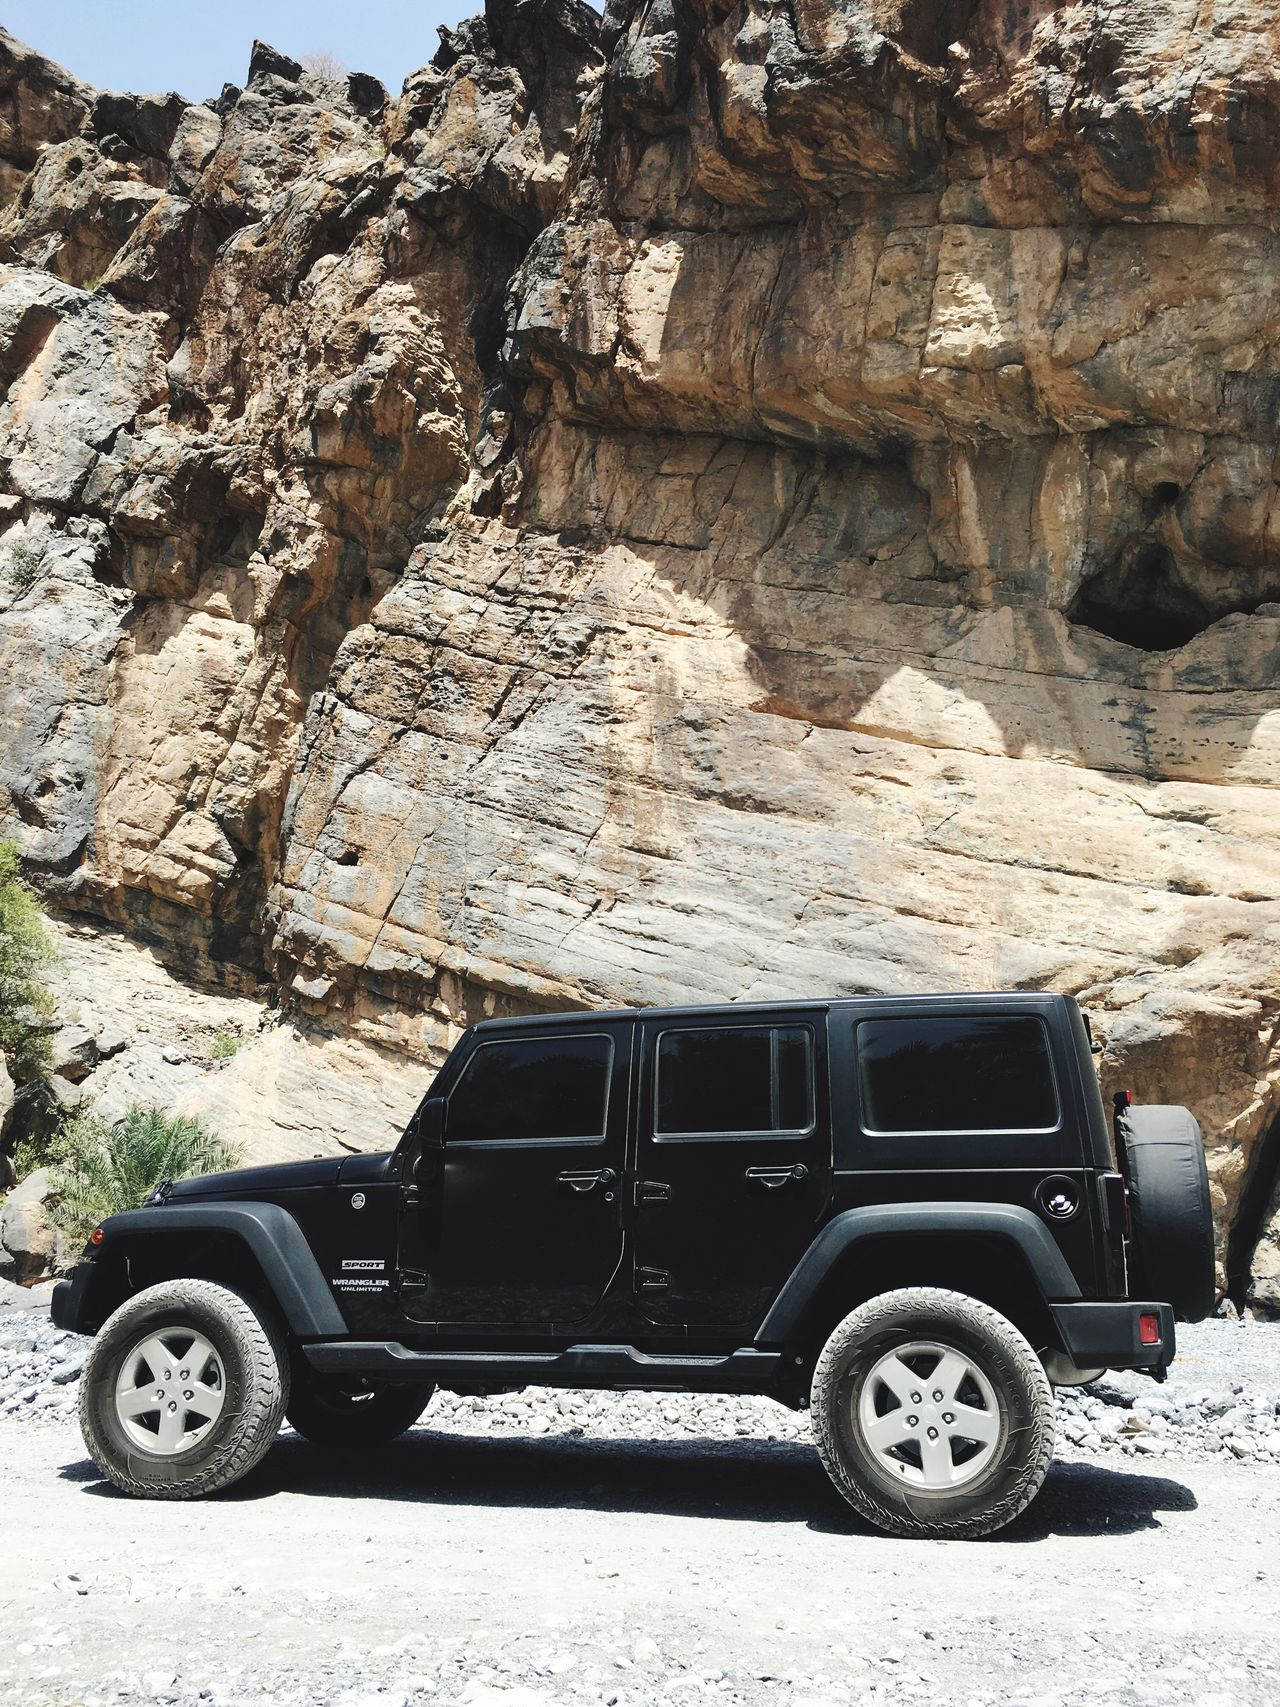 Off road Hanging Out Taking Photos Enjoying Life jeep Jeep Wrangler JK